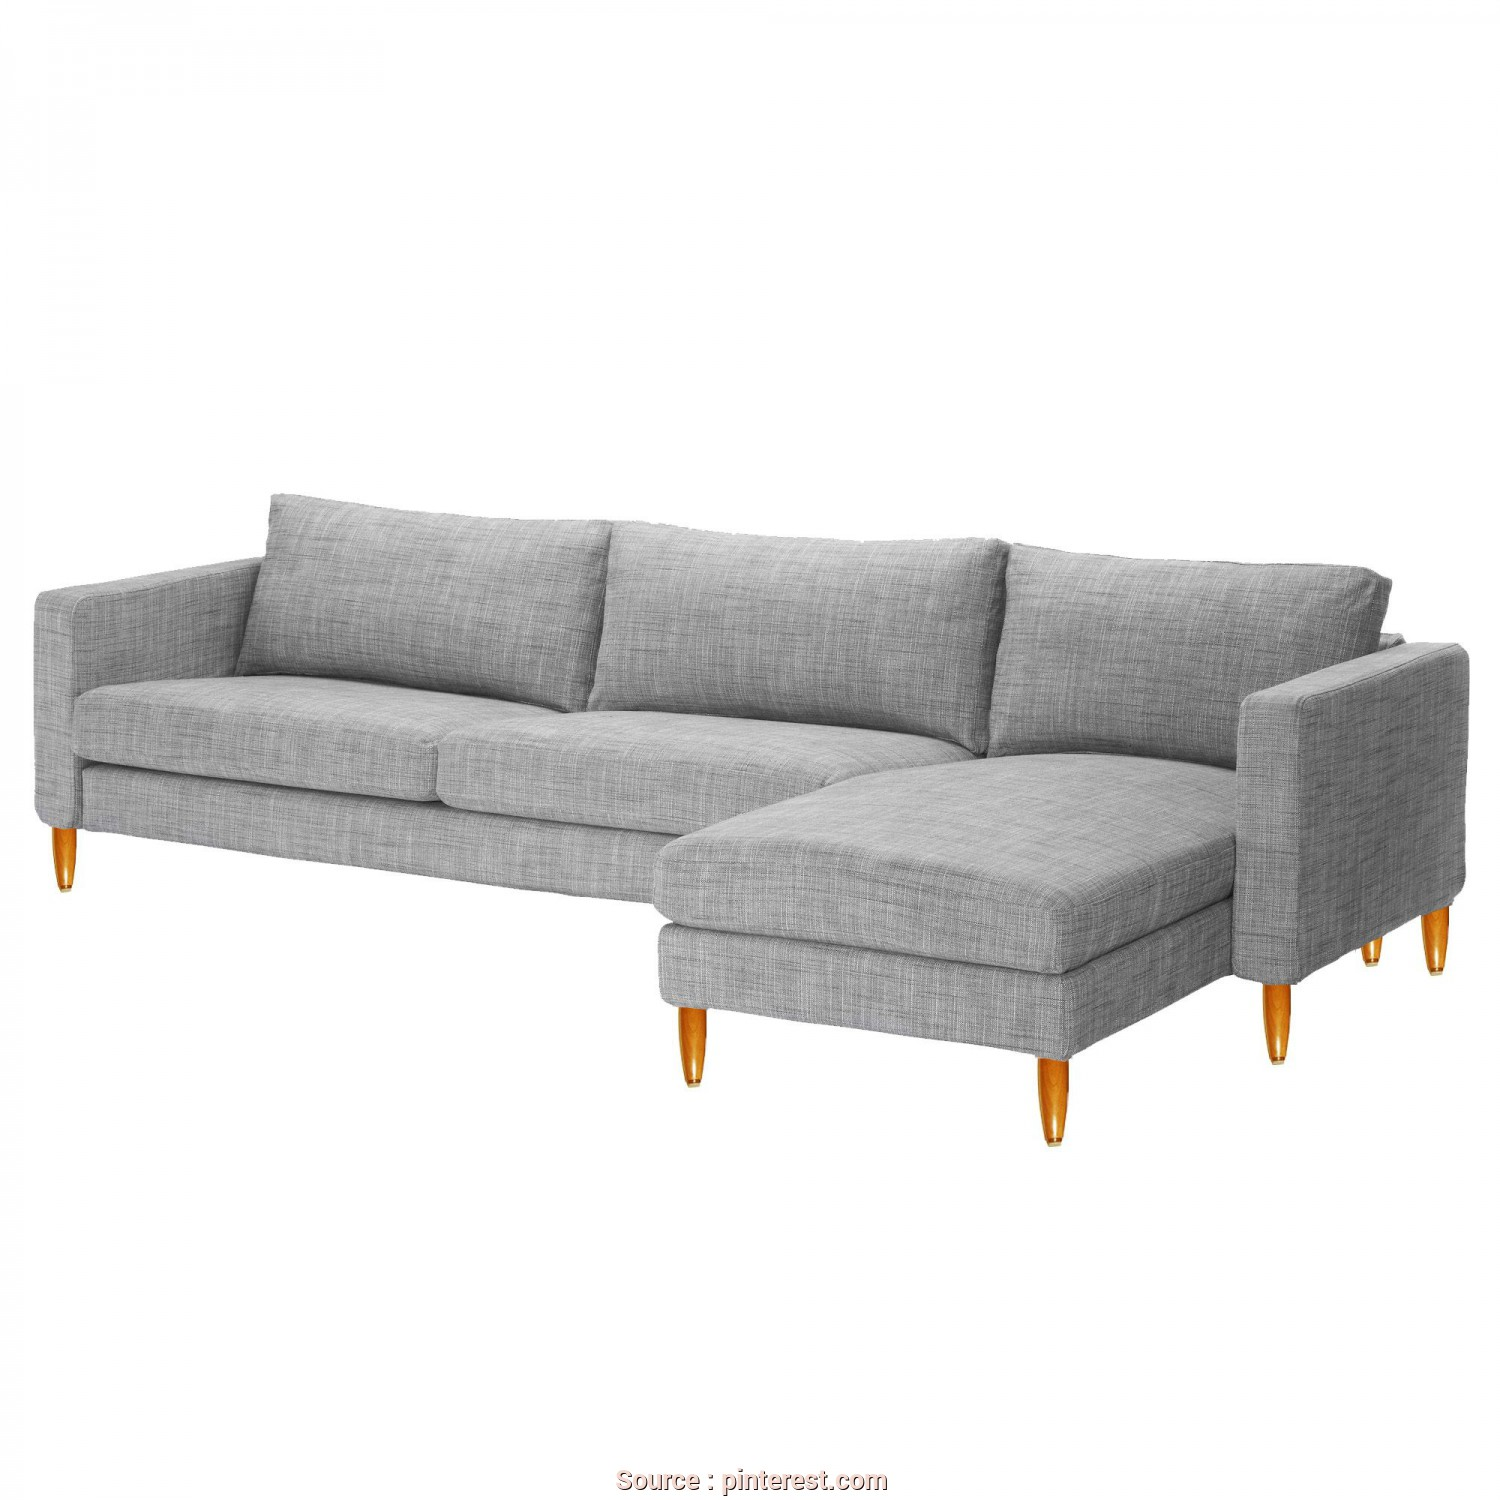 Ikea Backabro, Bettsofa, Bellissimo Ikea Karlstad Sofa + Chaise With, Legs., $610 Total (BOUGHT